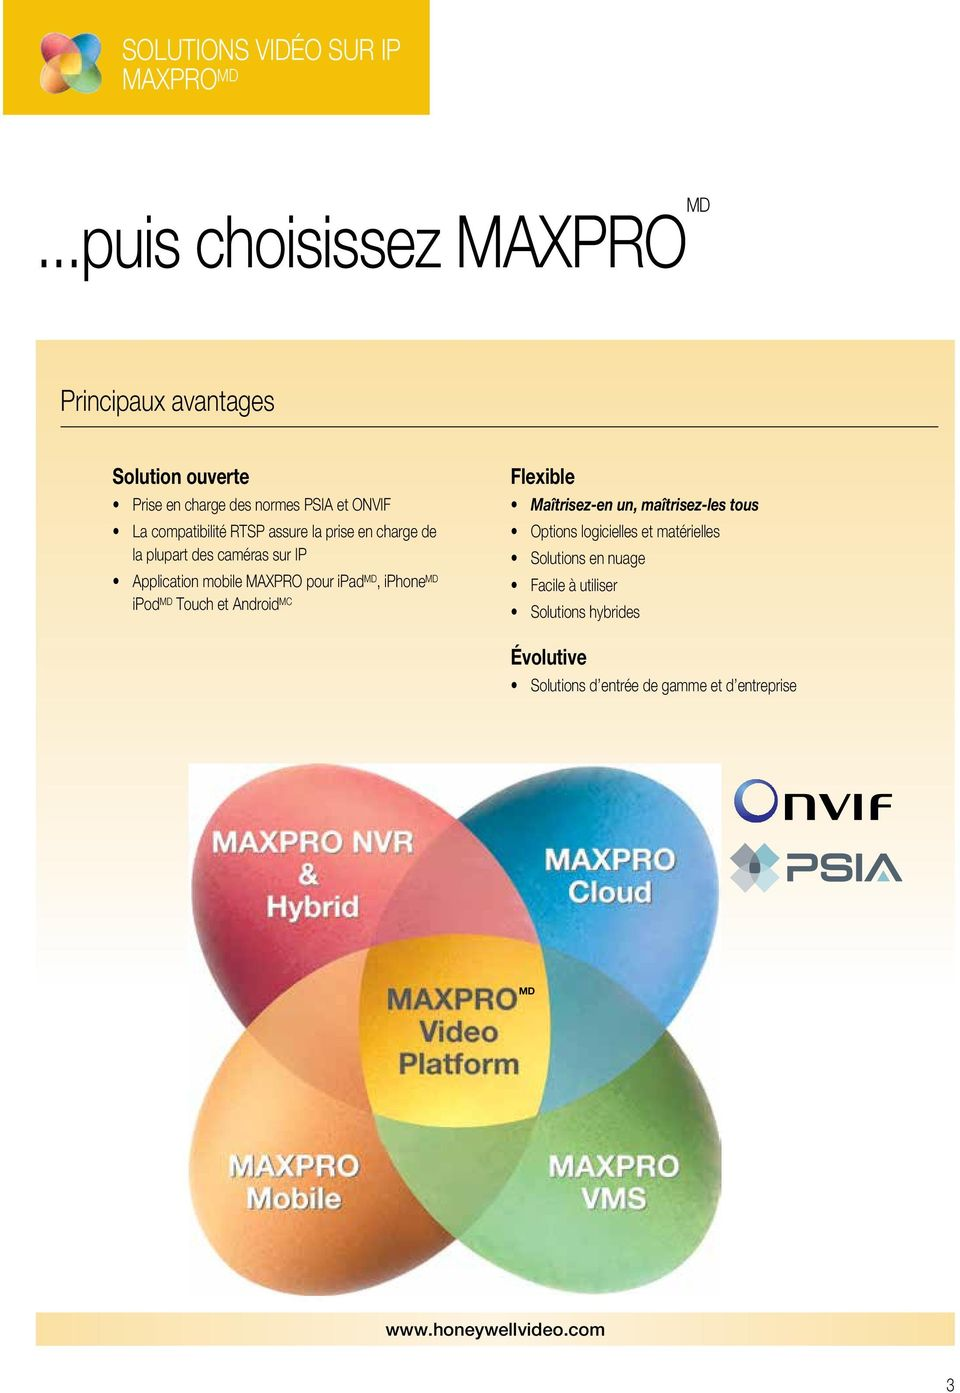 RTSP assure la prise en charge de la plupart des caméras sur IP Application mobile MAXPRO pour ipad MD, iphone MD ipod MD